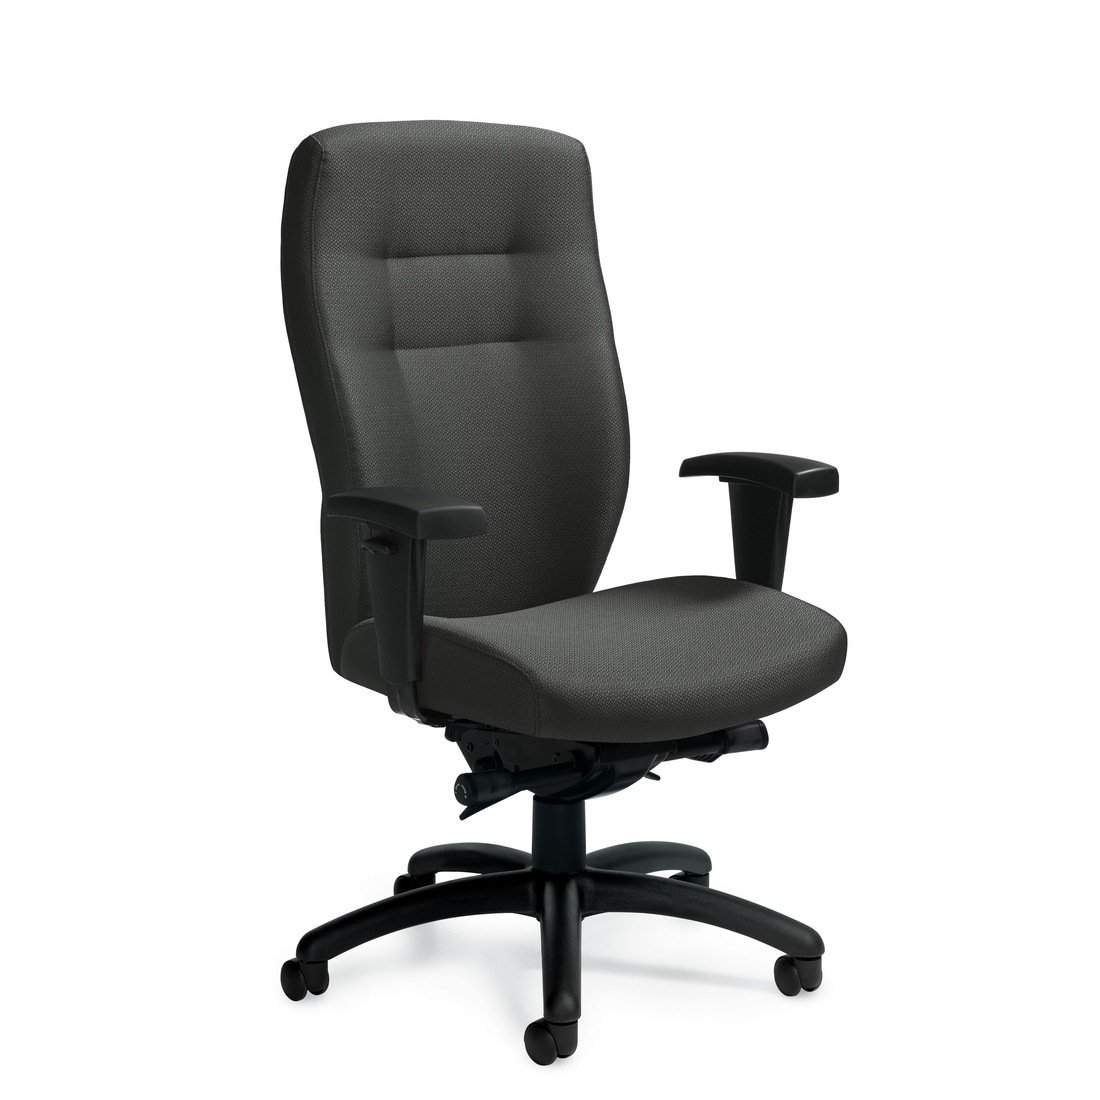 Synopsis high back synchro-tilter chair, model 5080-0. This chair has been placed on a white background.